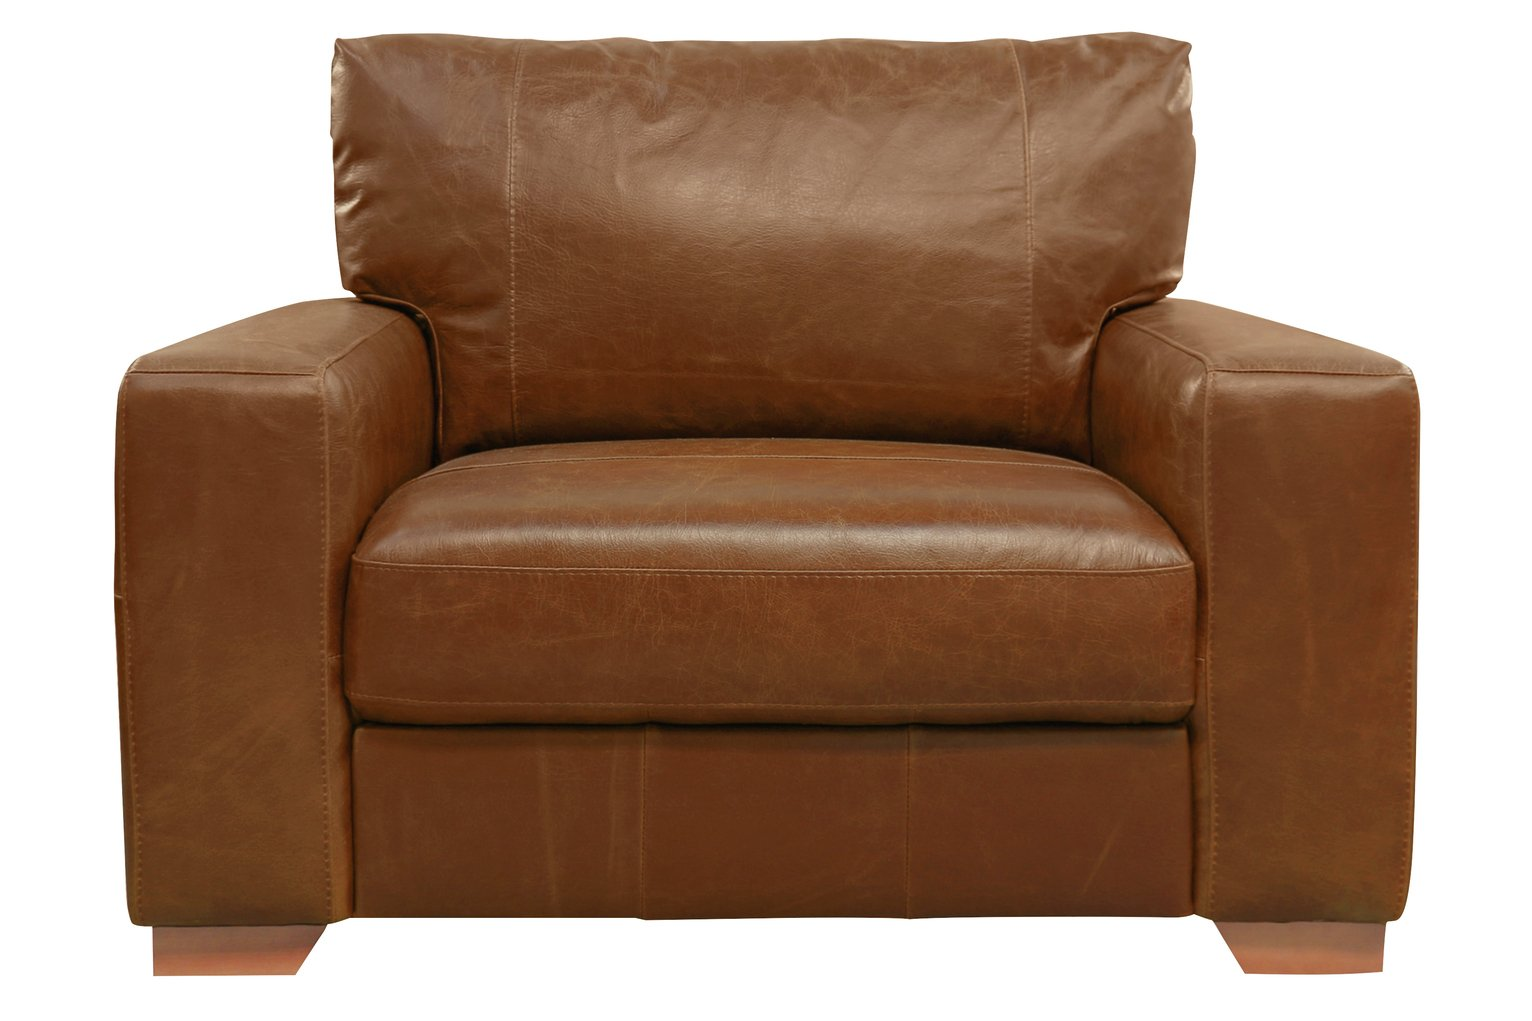 Argos Home Eton Leather Cuddle Chair   Tan